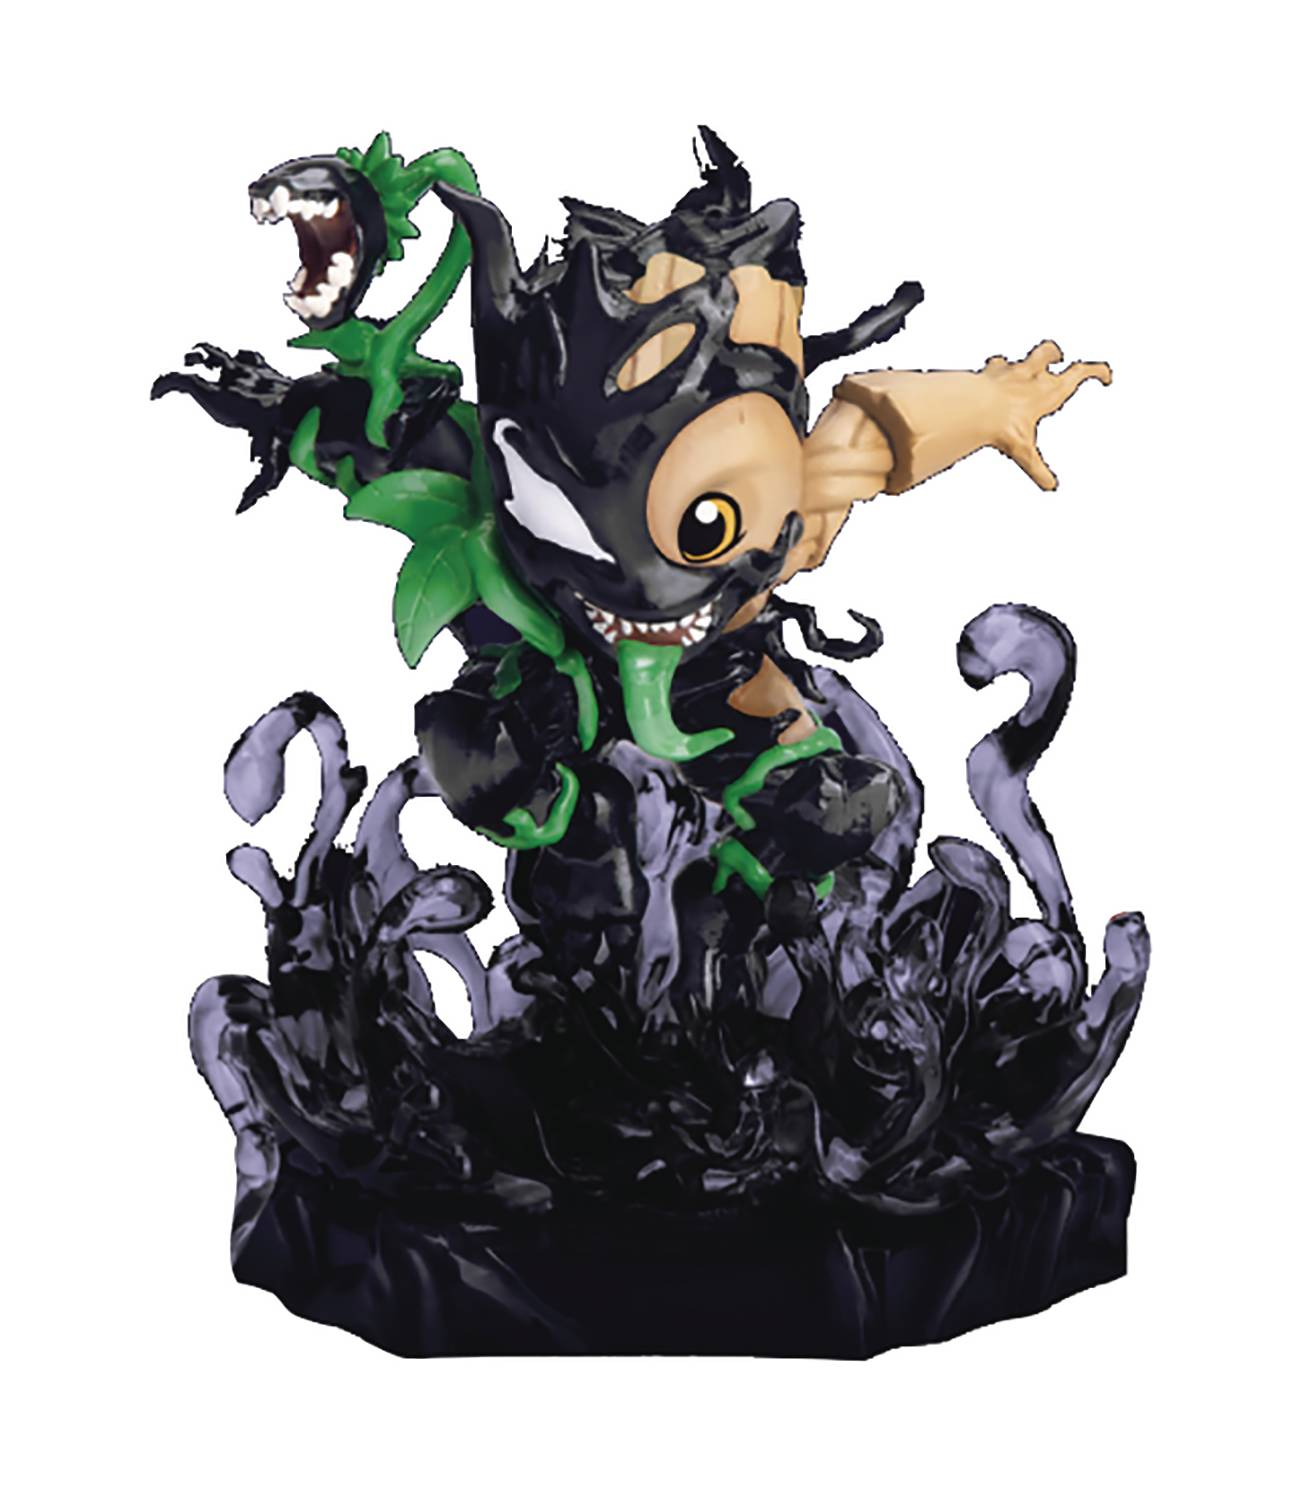 MARVEL MAXIMUM VENOM MEA-018 VENOMIZED GROOT FIG